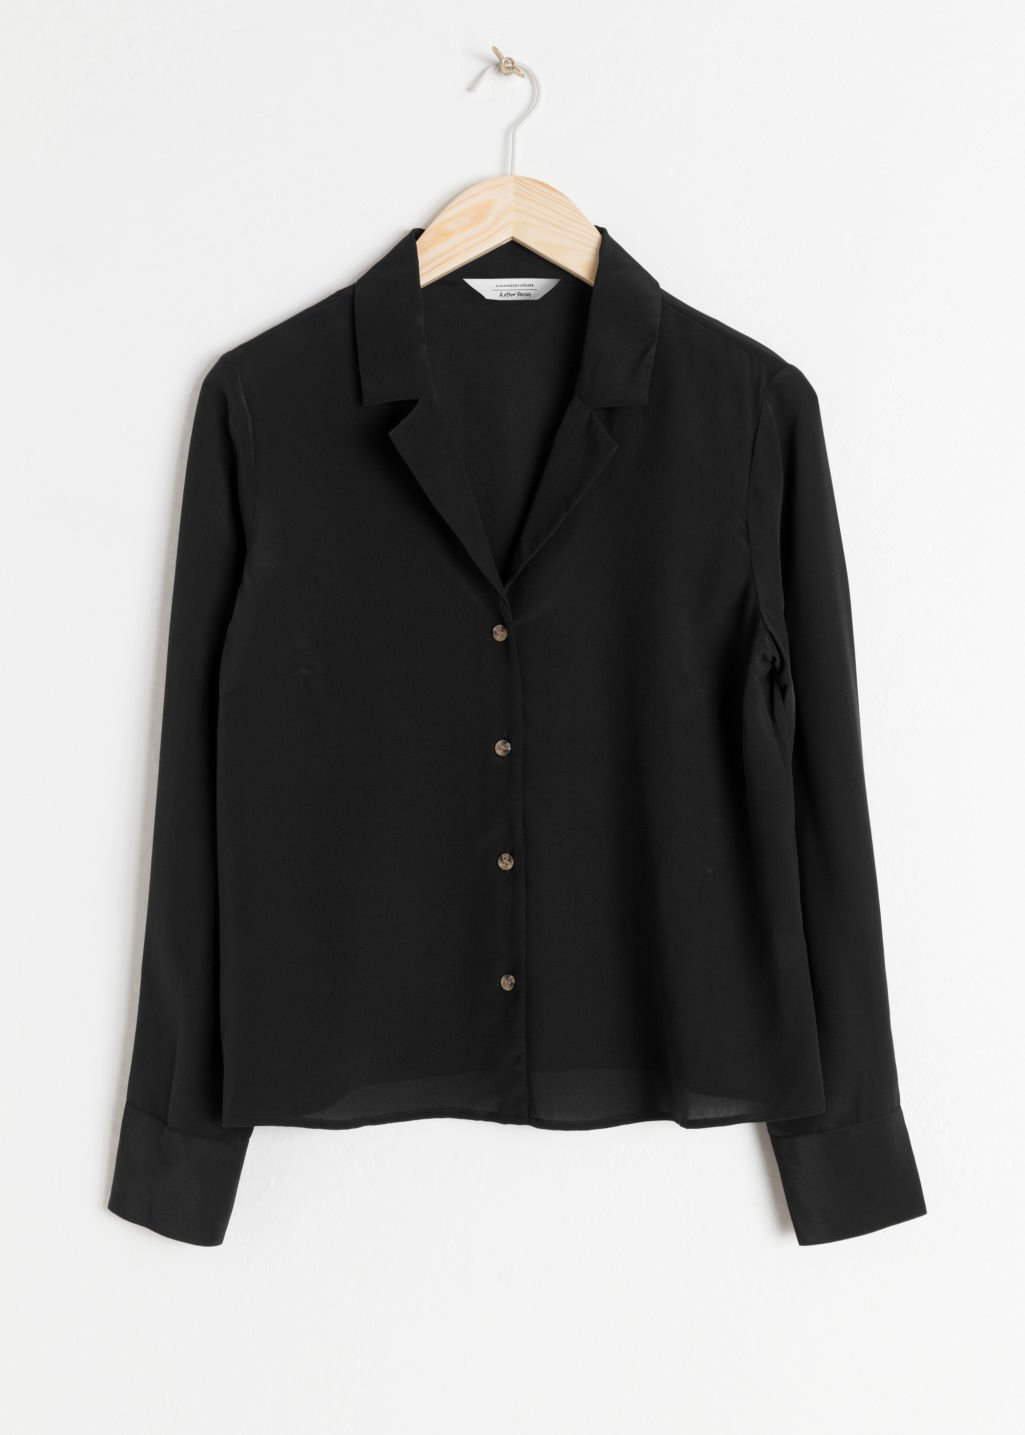 V-Cut Silk Button Down Blouse - Black - Shirts - & Other Stories US